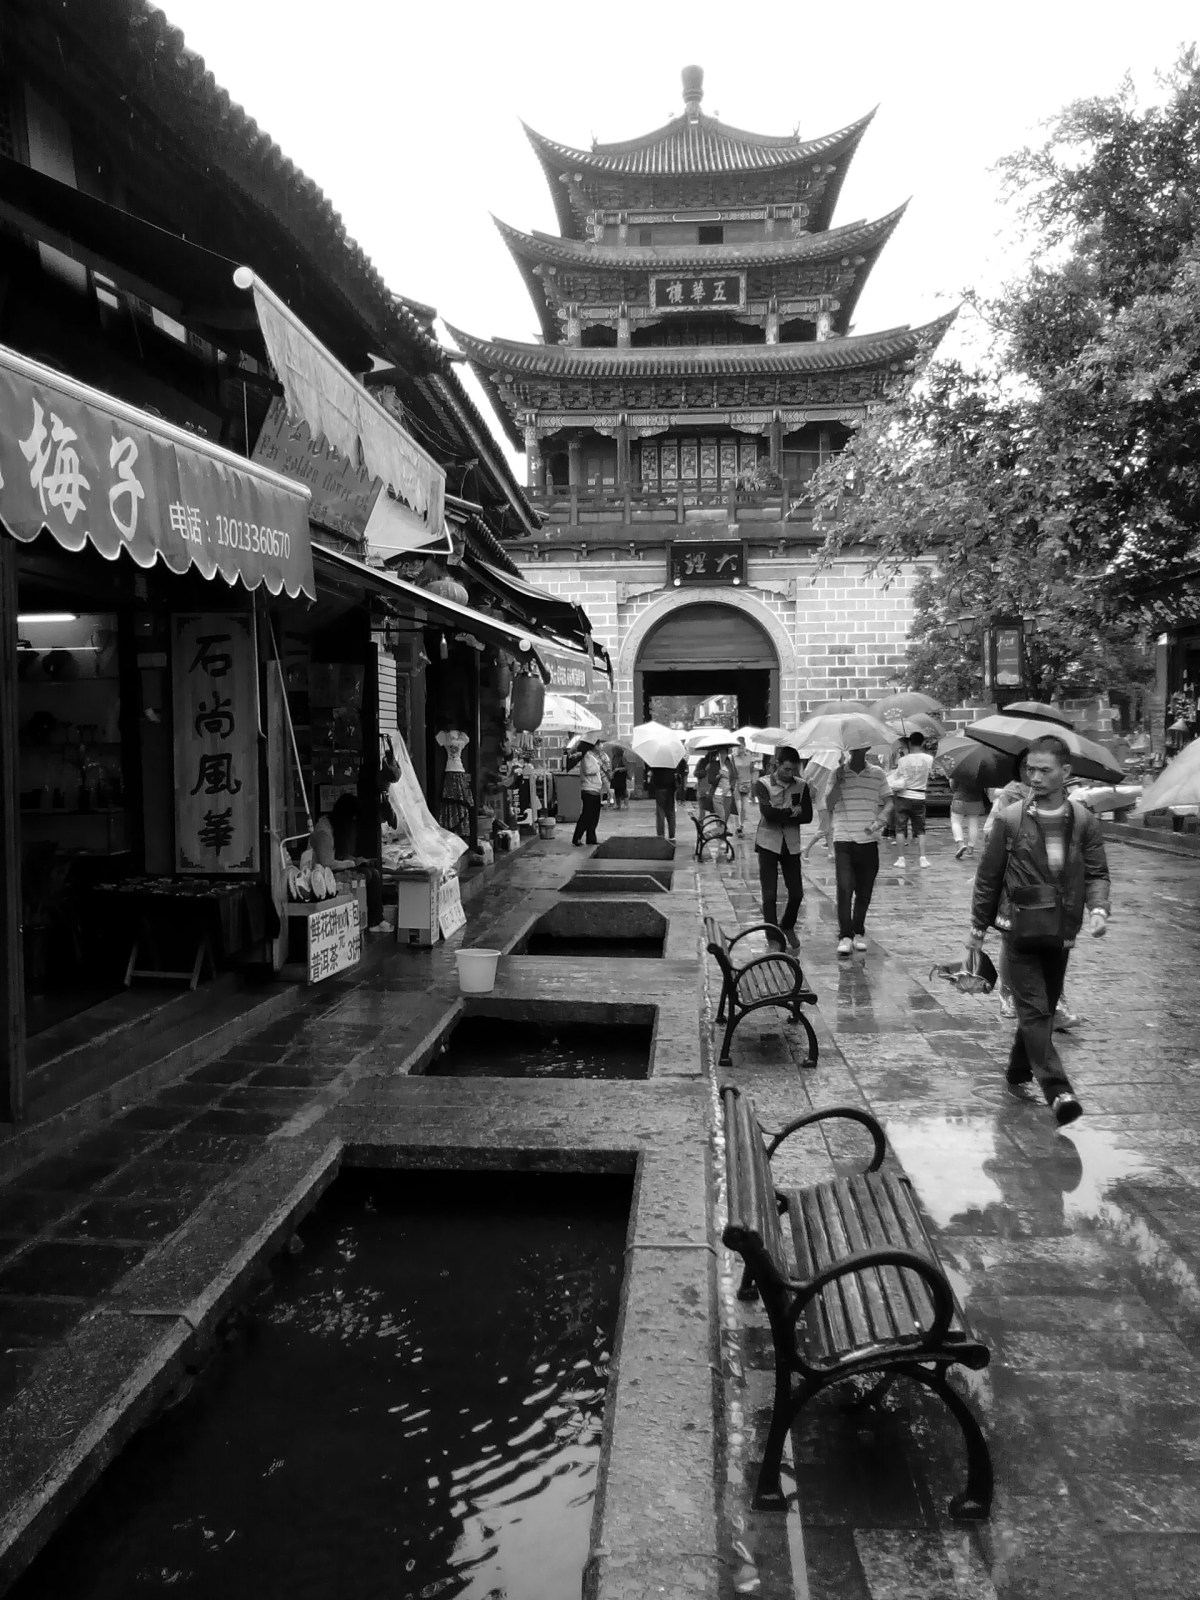 Yunnan Dali - Organized trip to Yunnan: 12 days in China with driver and guide